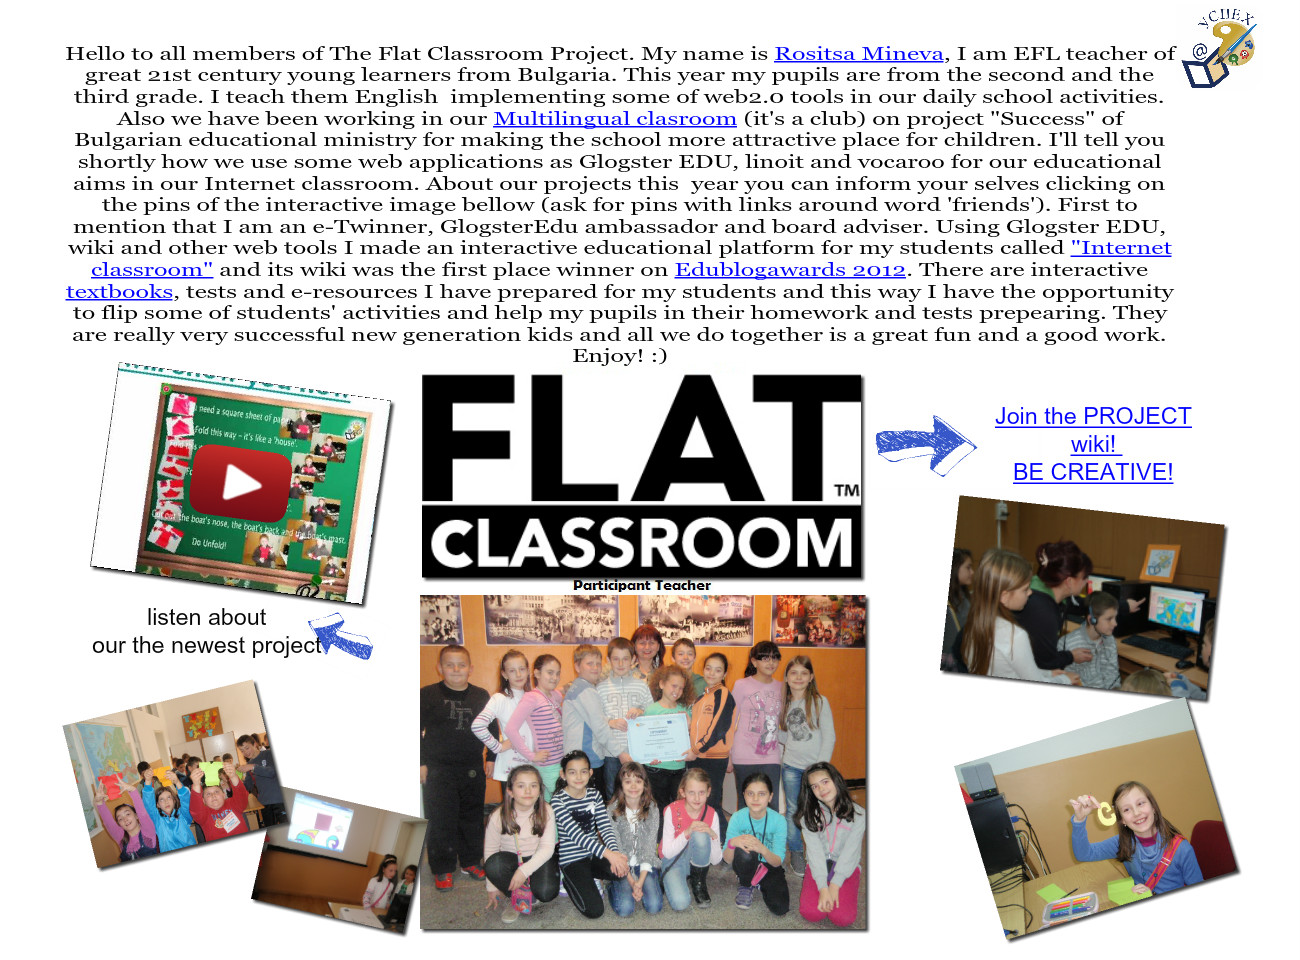 For the Flat Classroom project